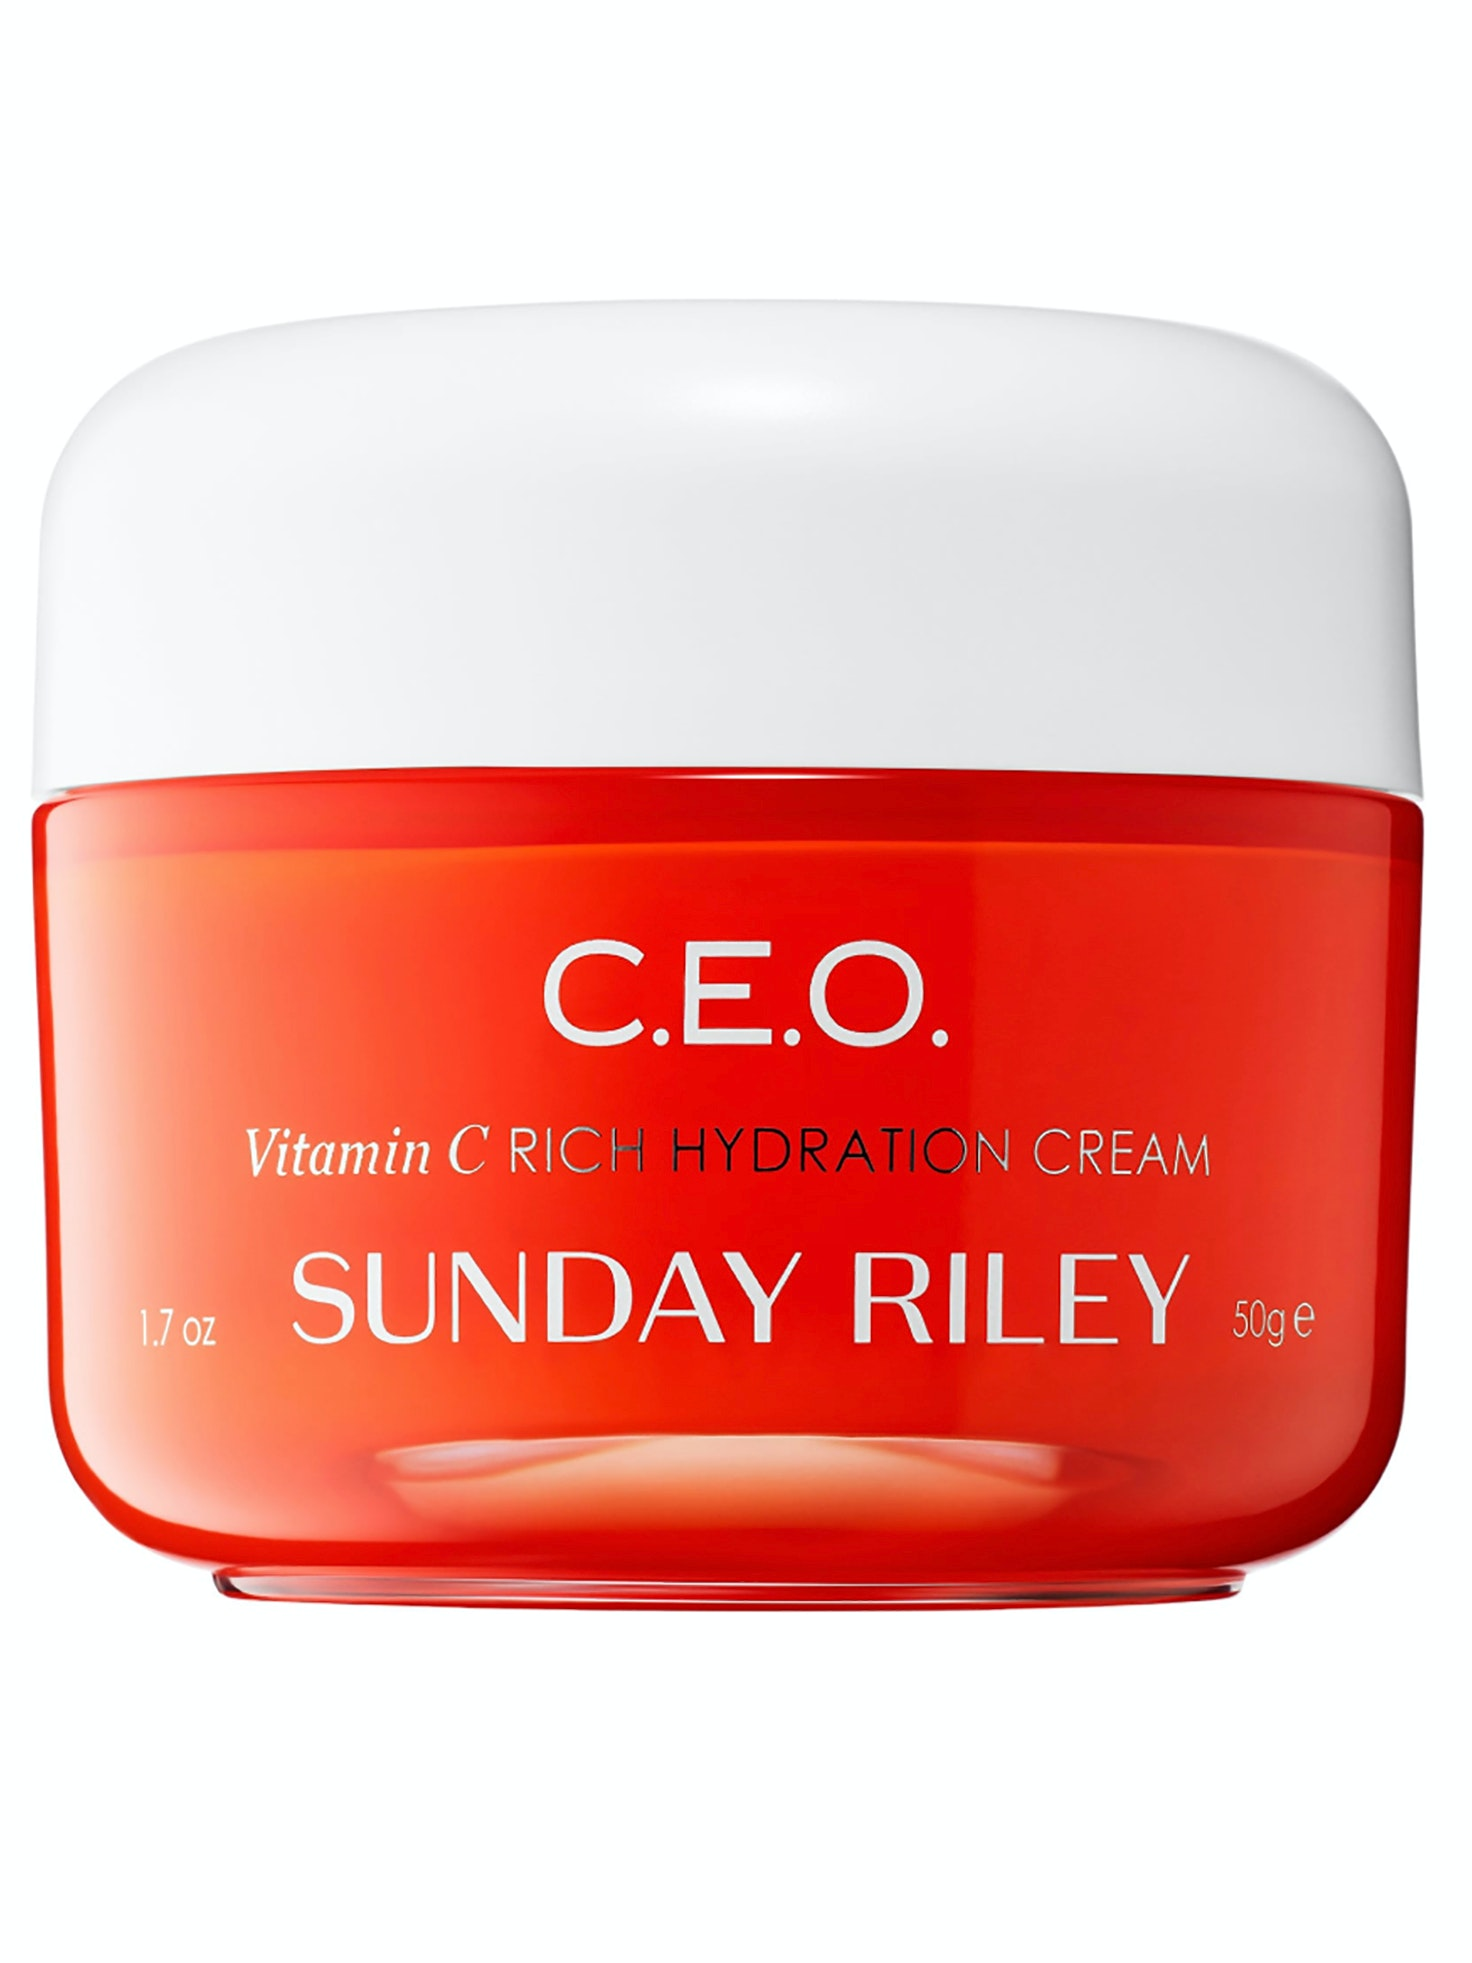 Sunday Riley CEO moisturizer